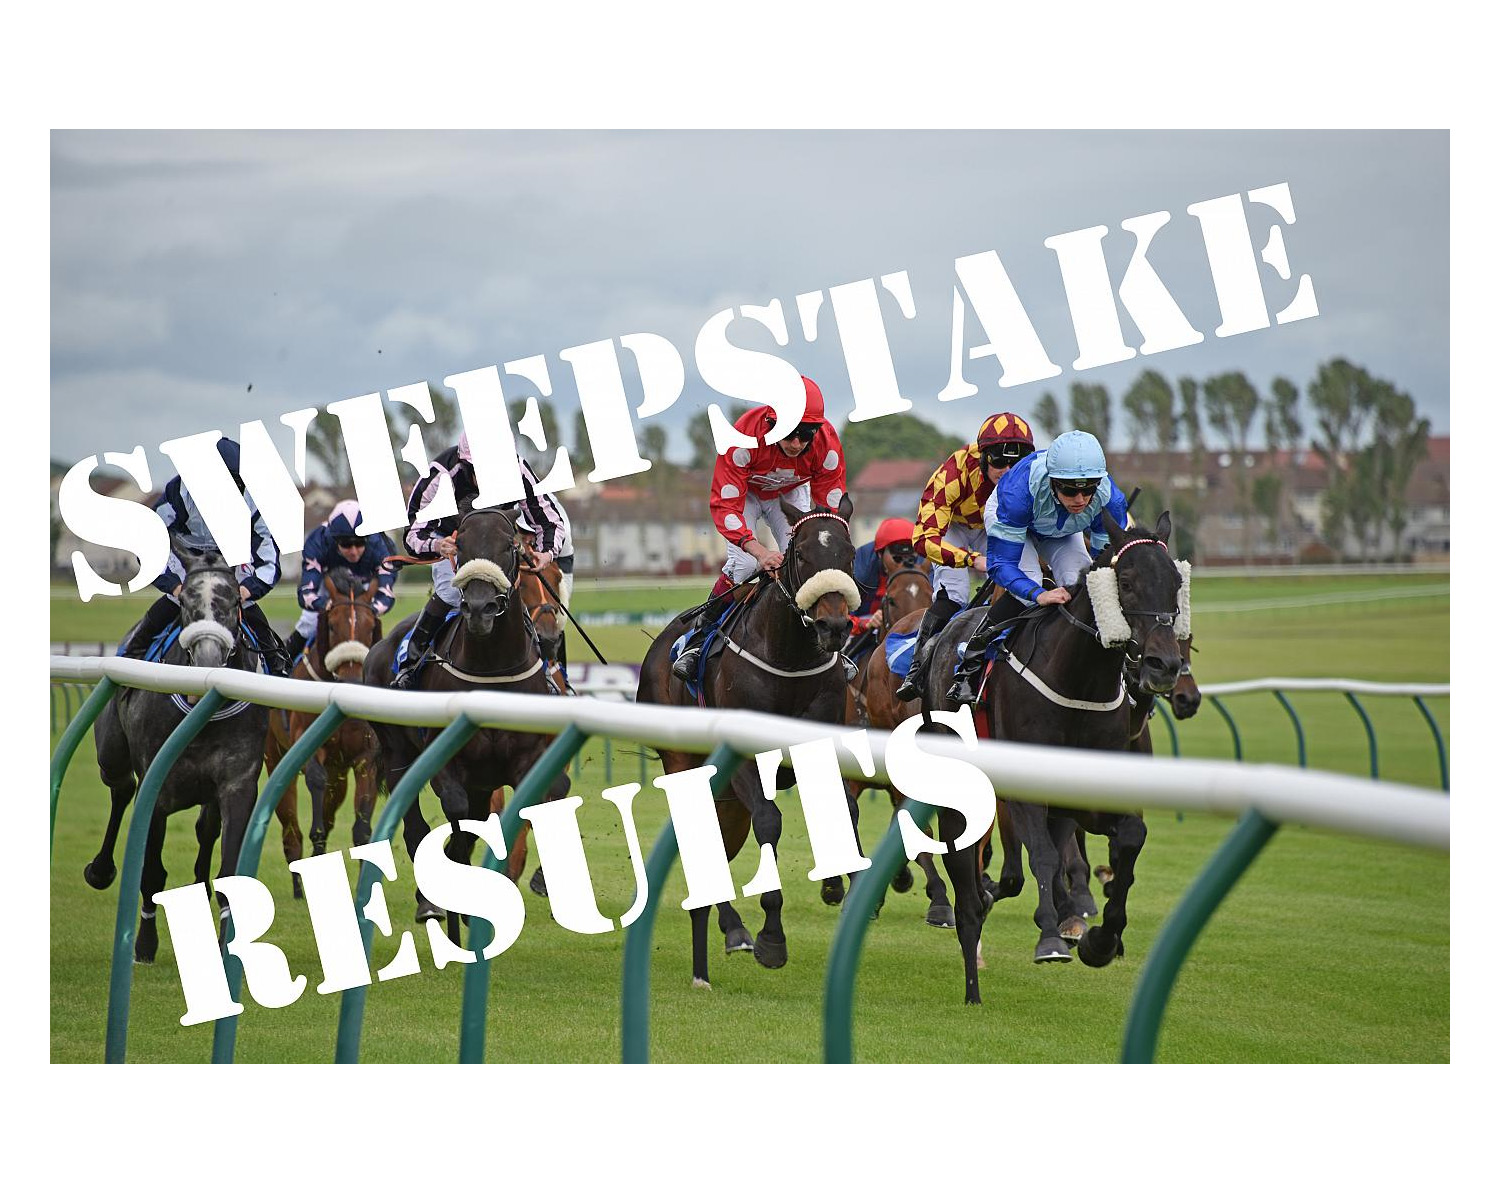 2019 Sweepstake Final Results - 15th December 2019